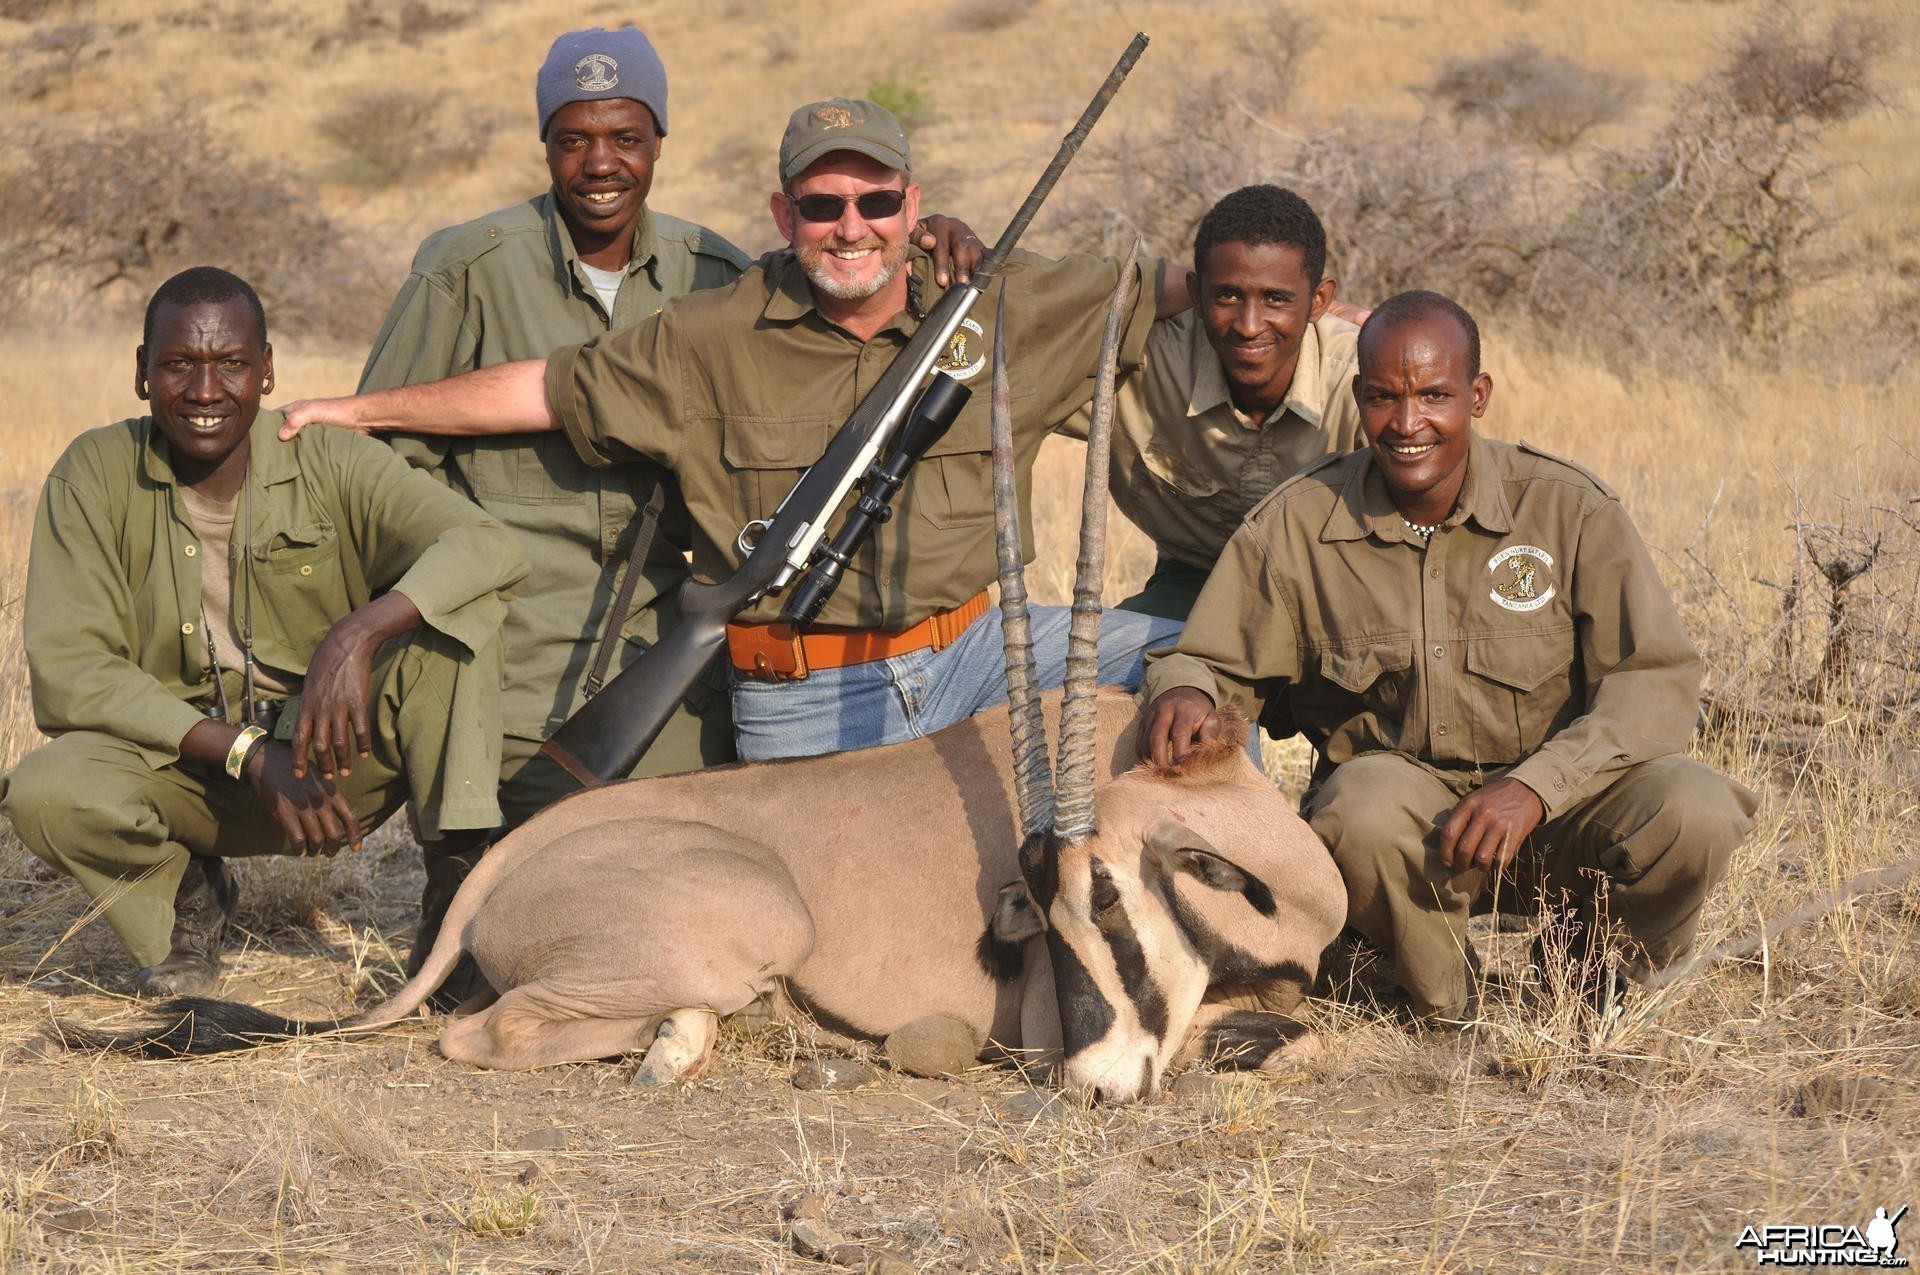 Hunting Finged Ear Oryx Tanzania